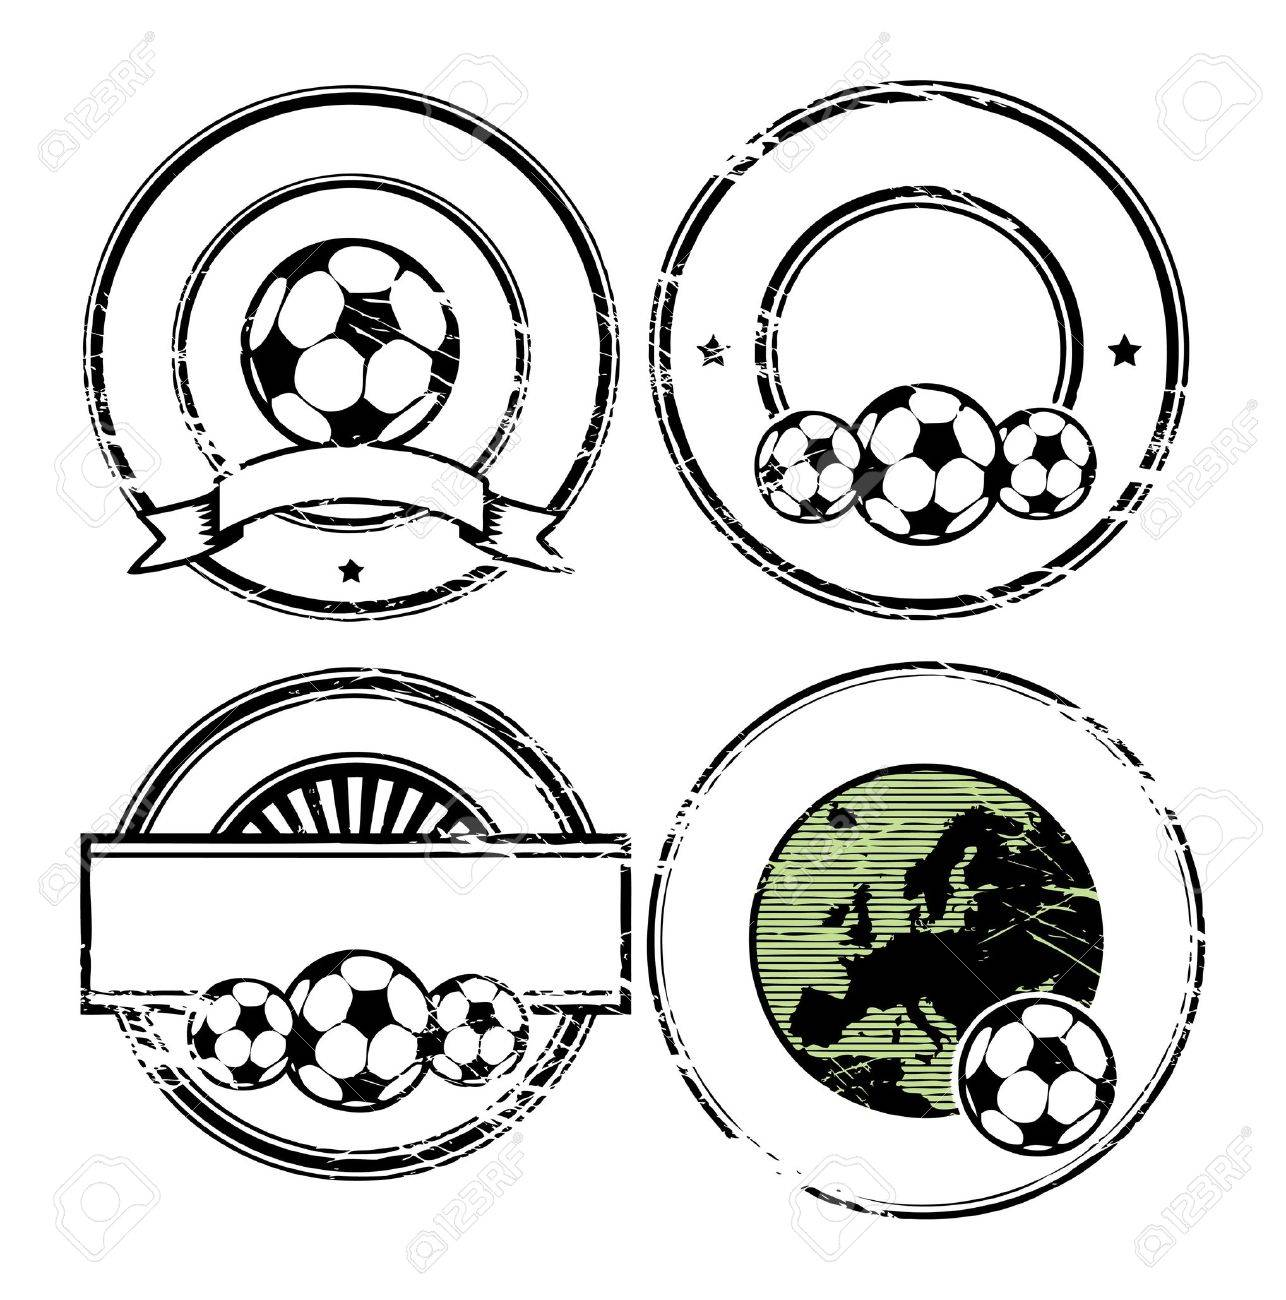 Abstract empty grunge rubber stamp set with space for text, soccer theme Stock Vector - 14561958